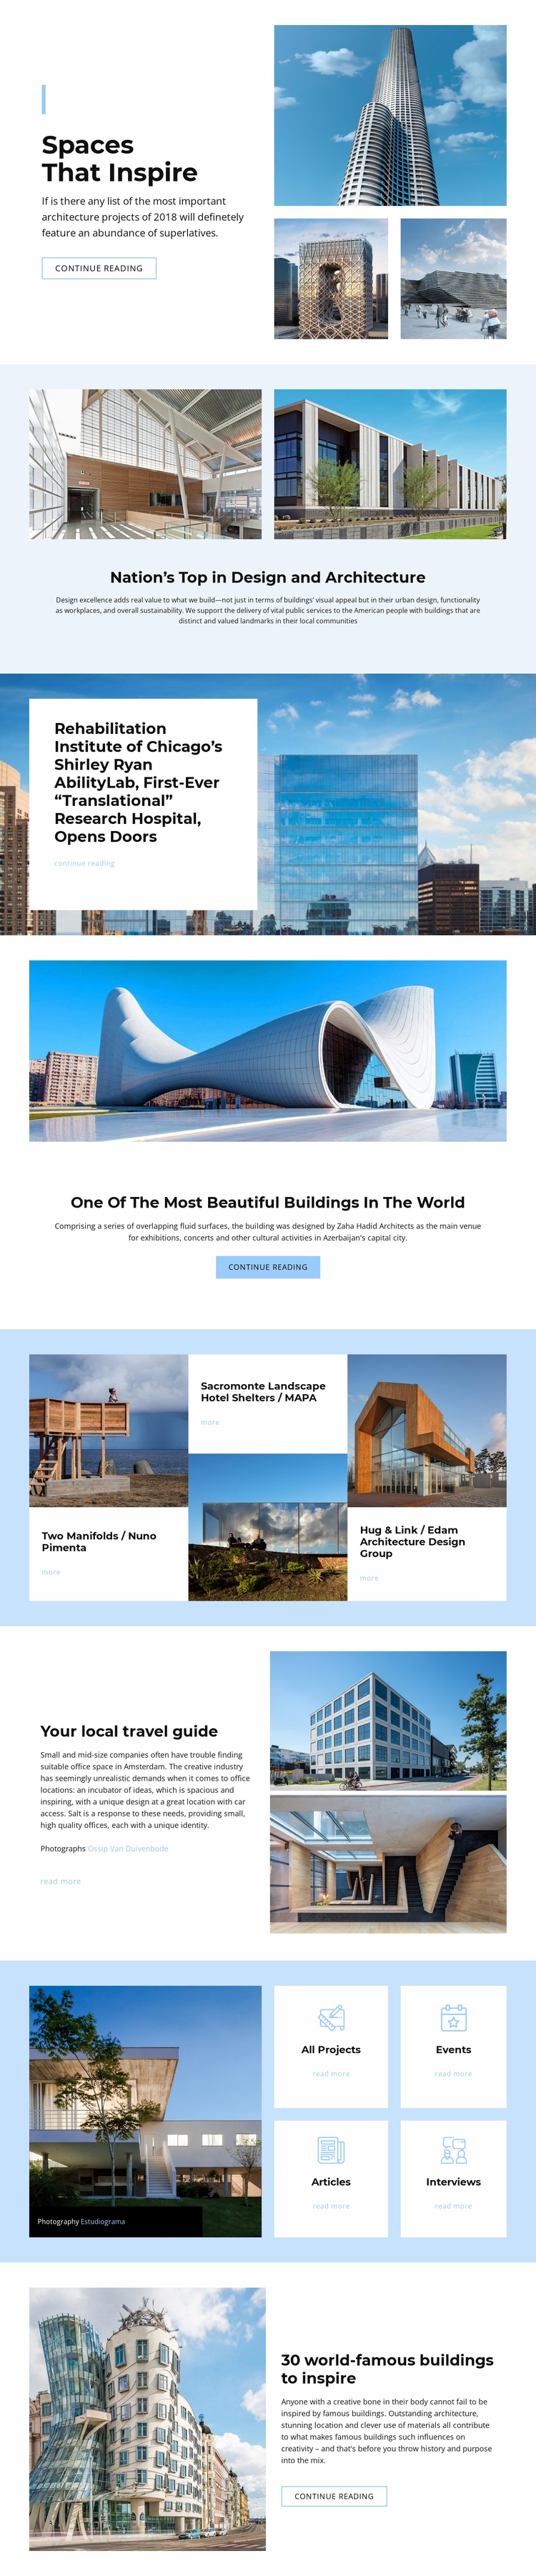 Space-inspired architechture Website Template